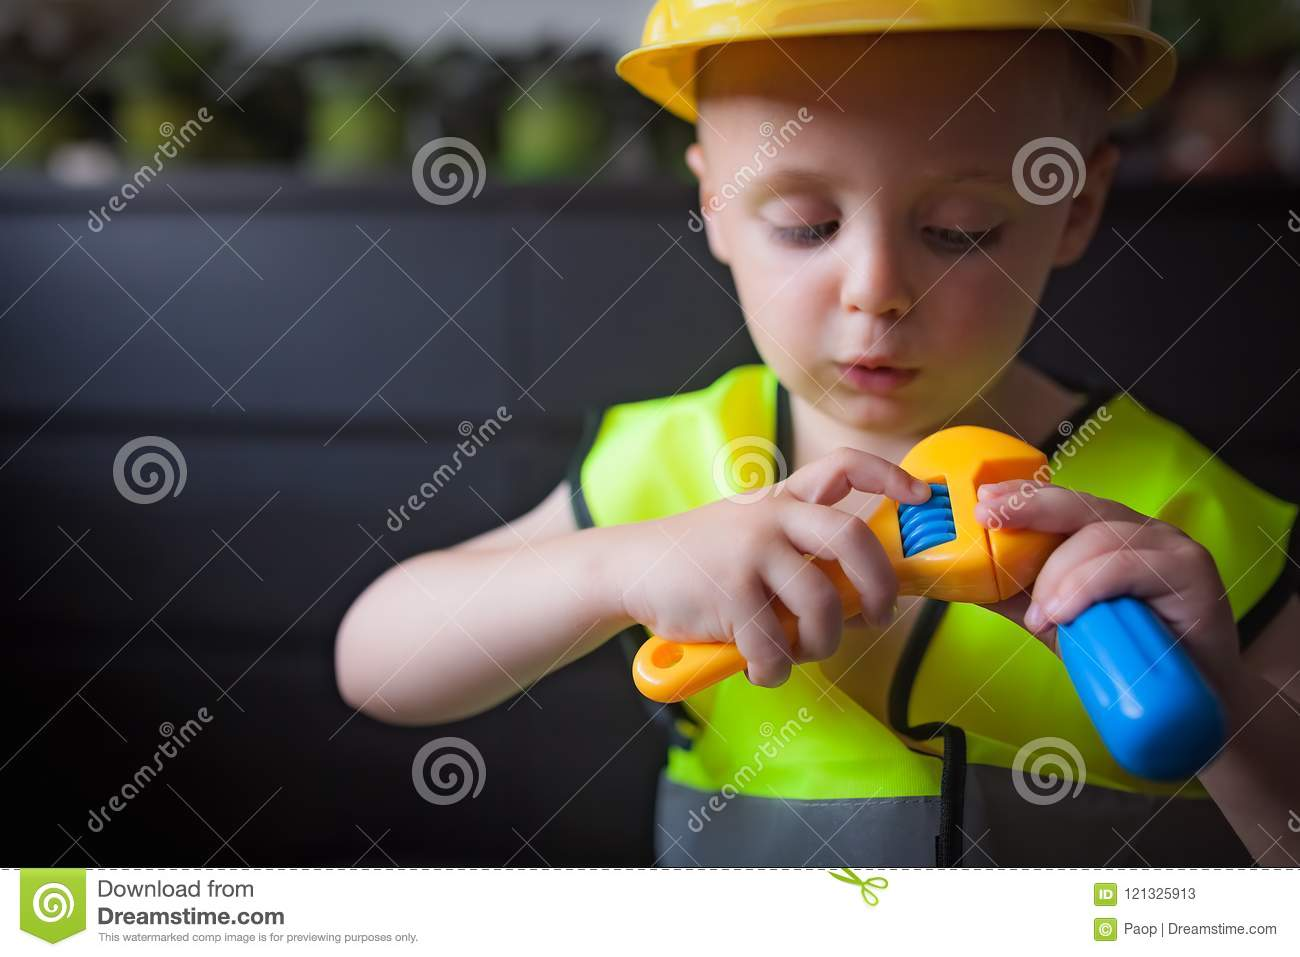 8991b9041 Little cute boy holding plastic toy tools pretending to be a builder foreman